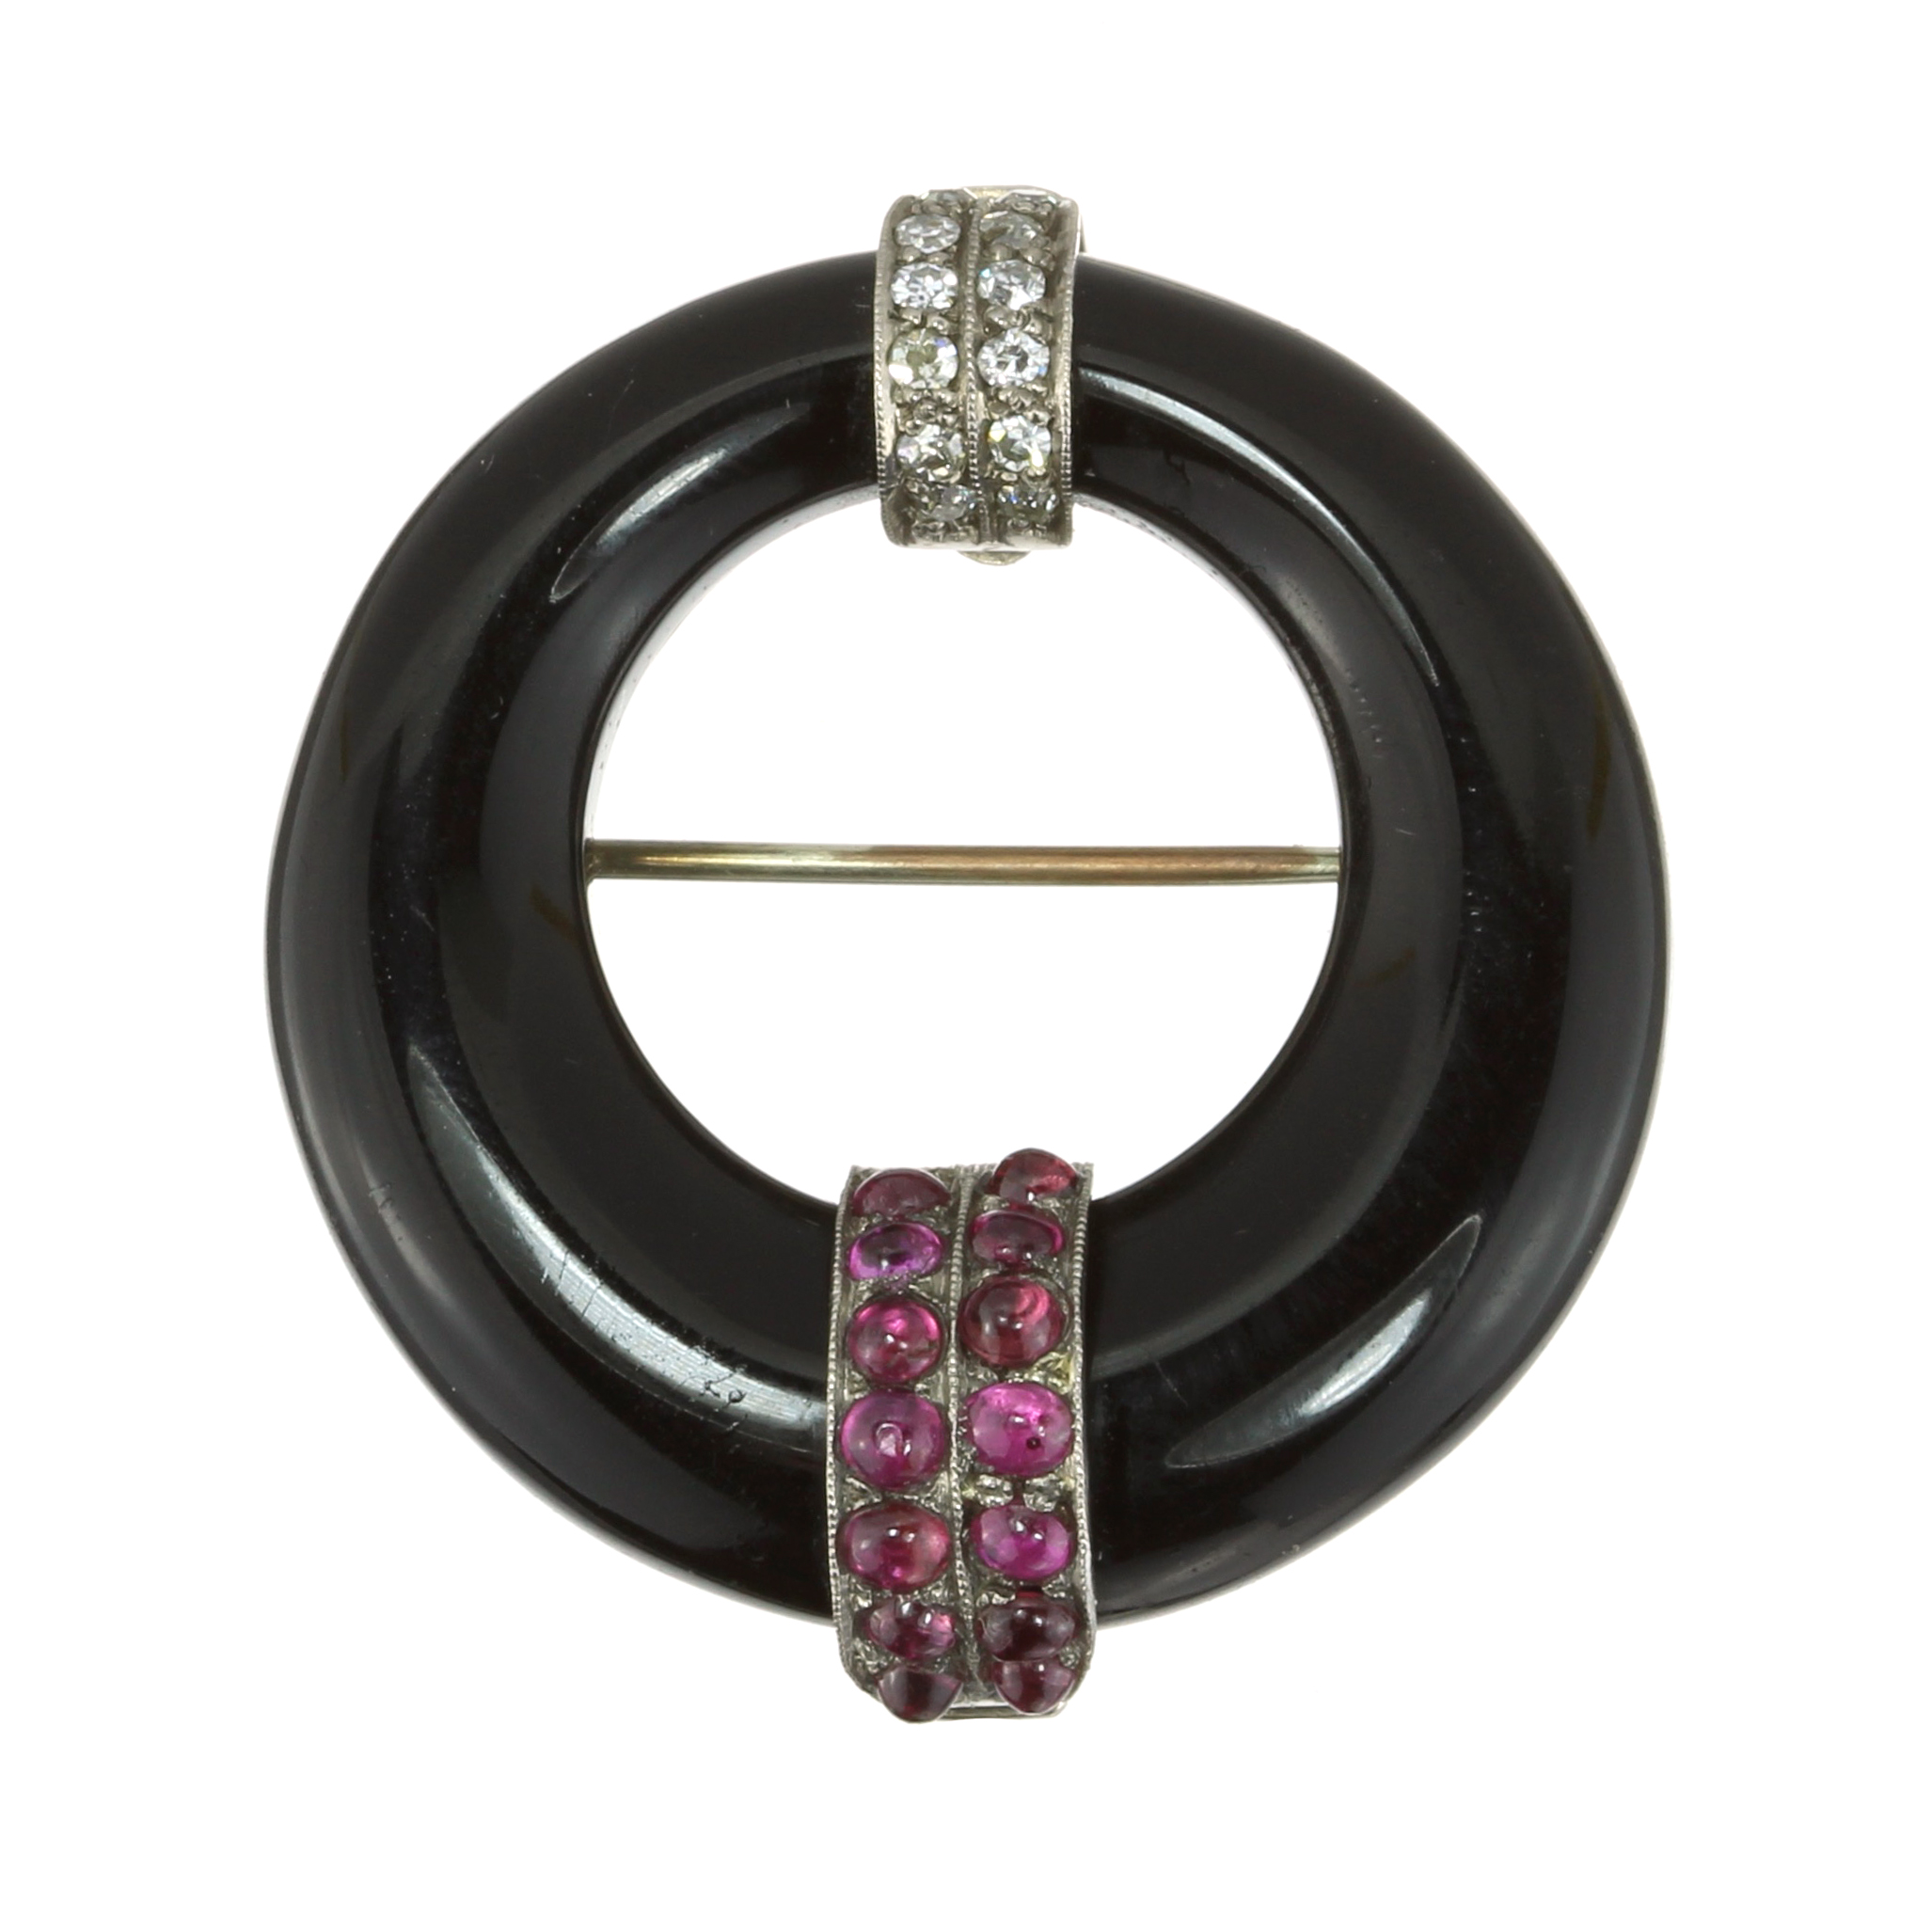 Los 31 - AN ANTIQUE ART DECO ONYX, RUBY AND DIAMOND BROOCH in 18ct white gold designed as a graduated black